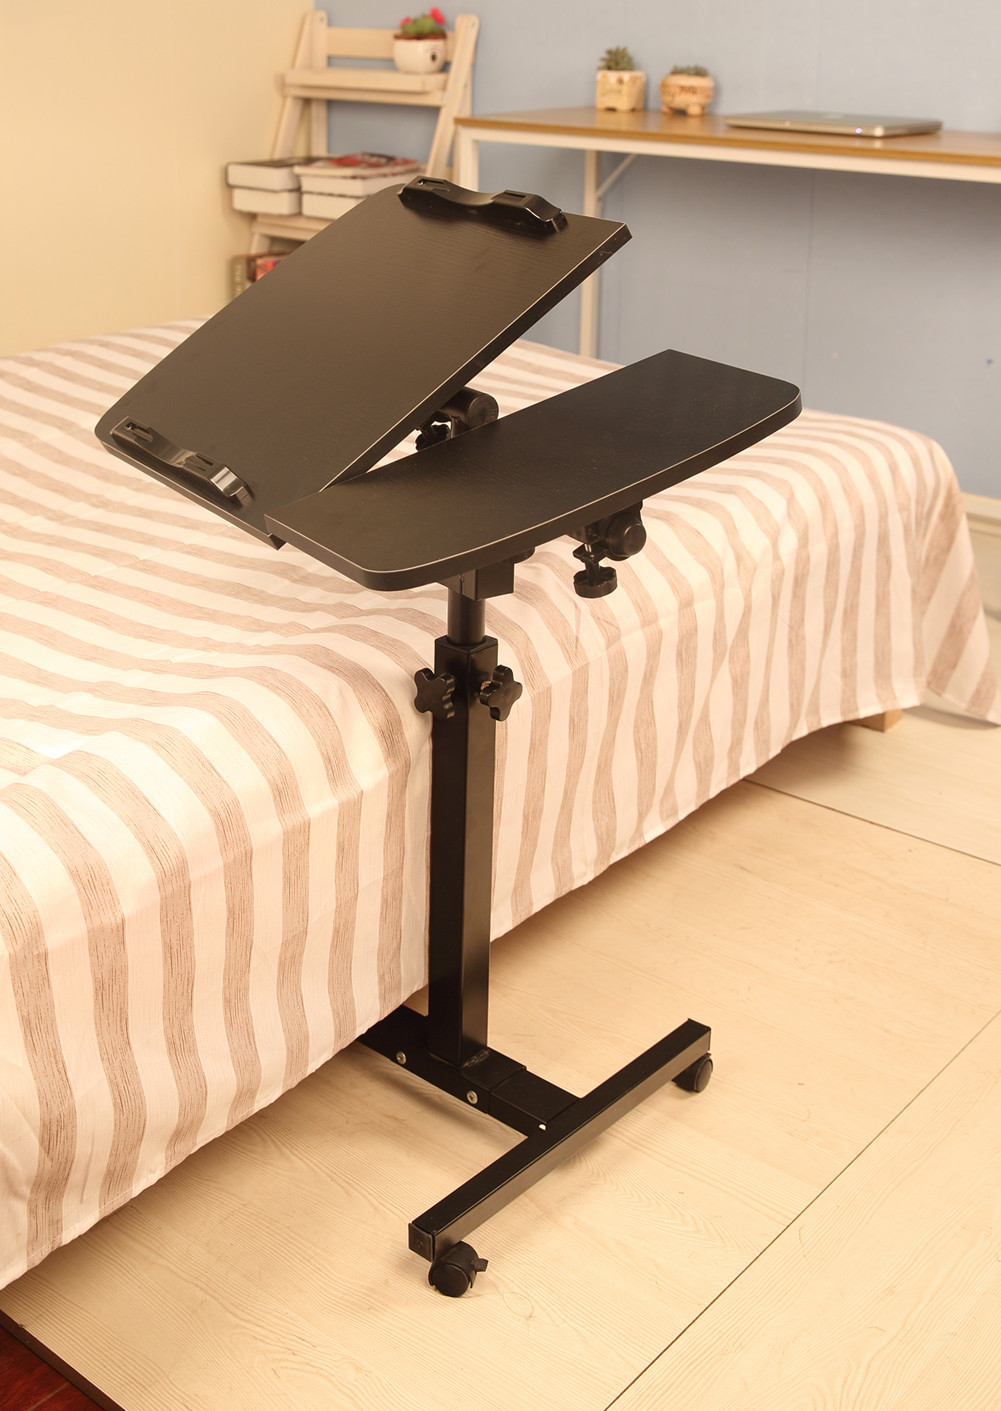 2019 turnlift sit-stand Mobile Laptop Desk Cart with Side Table notebook Stand Tray For Sofa Bed Black(China)